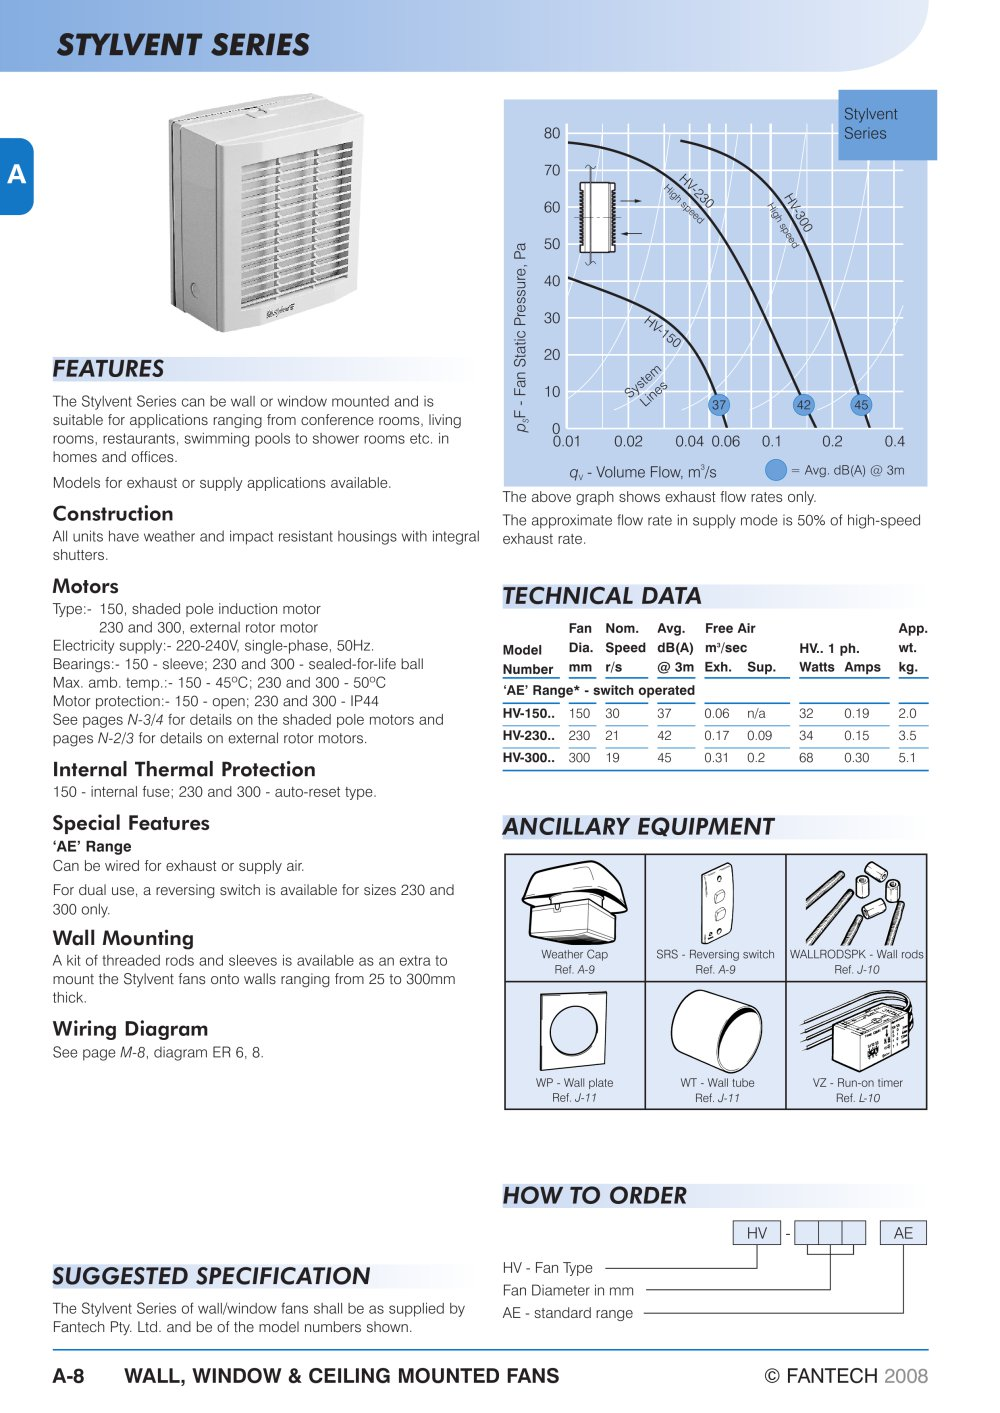 Stylvent Series Fantech PDF Catalogues Documentation Brochures - Fantech wiring diagram